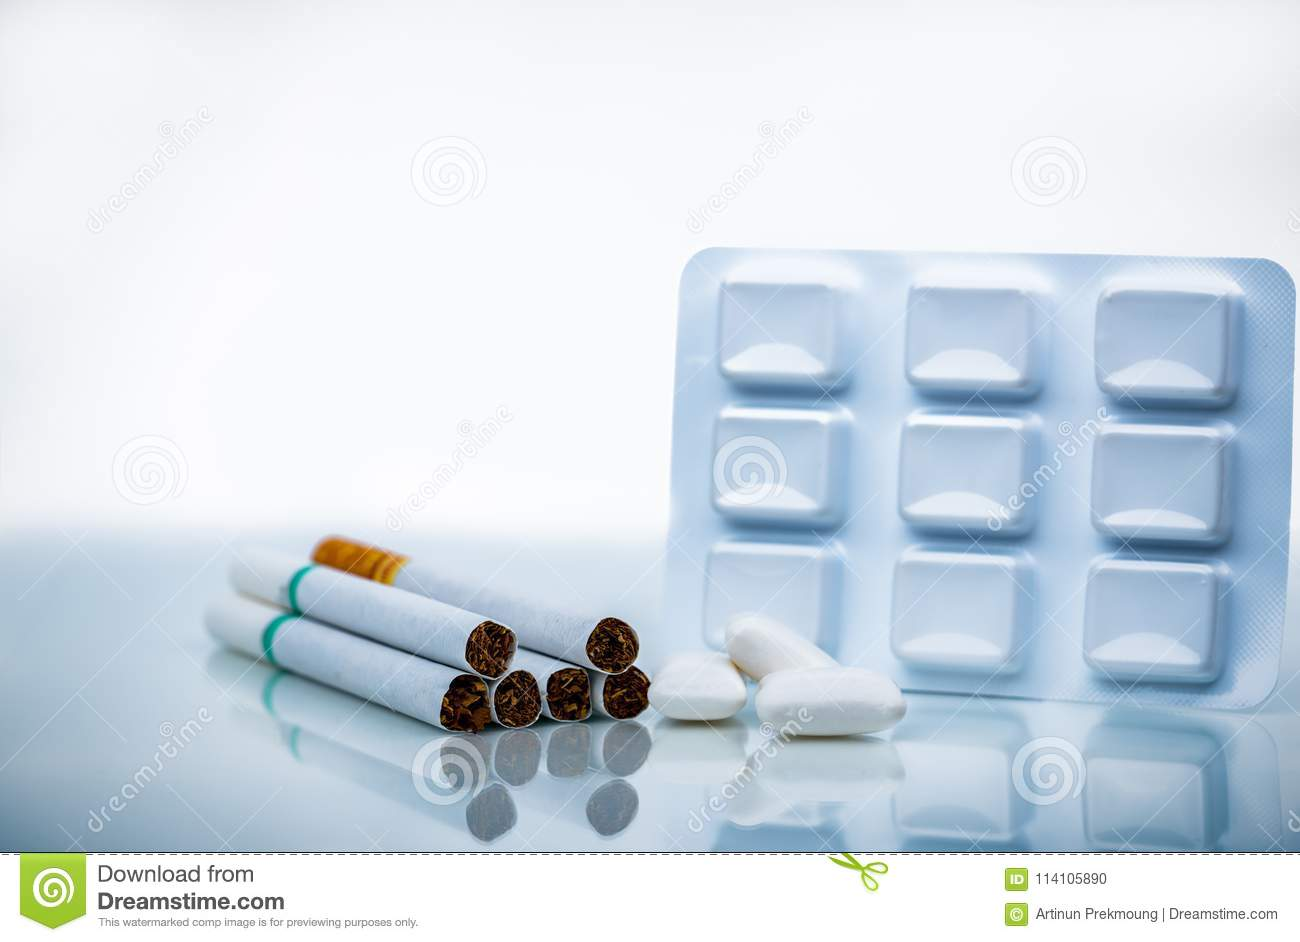 Nicotine Chewing Gum In Blister Pack Near Pile Of Cigarette